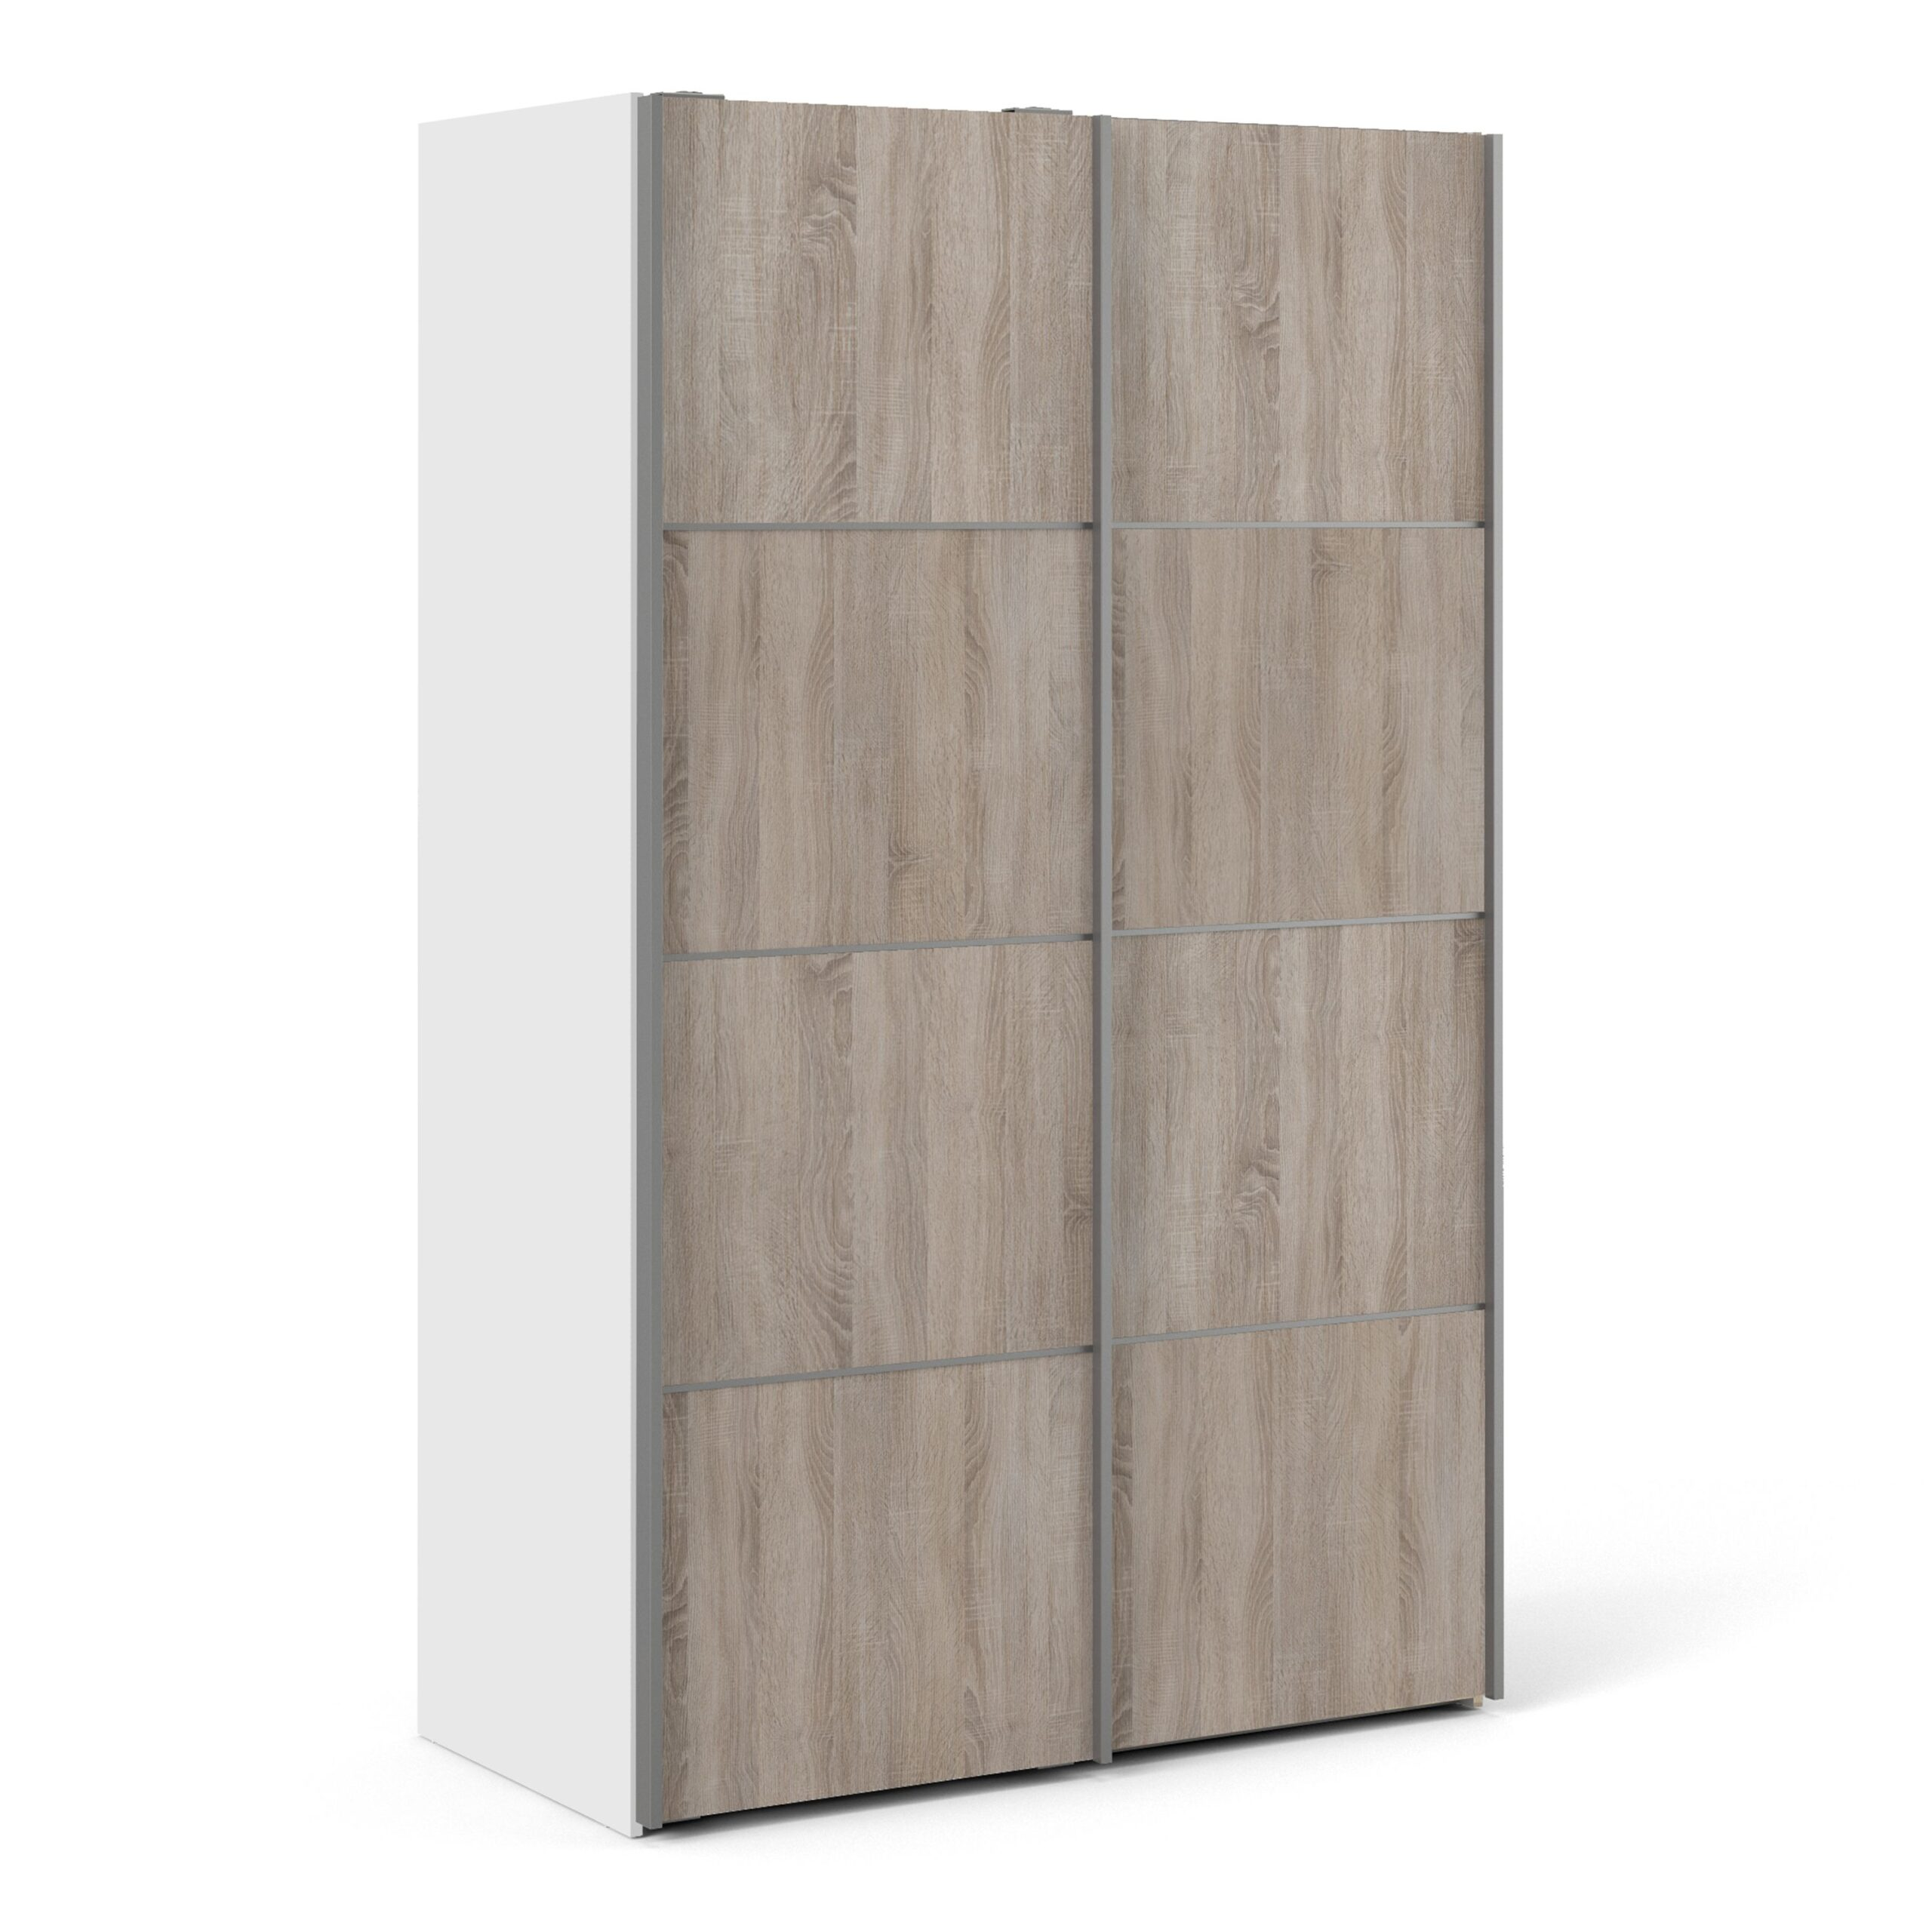 Phillipe Sliding Wardrobe 120cm in White with Truffle Oak Doors with 2 Shelves